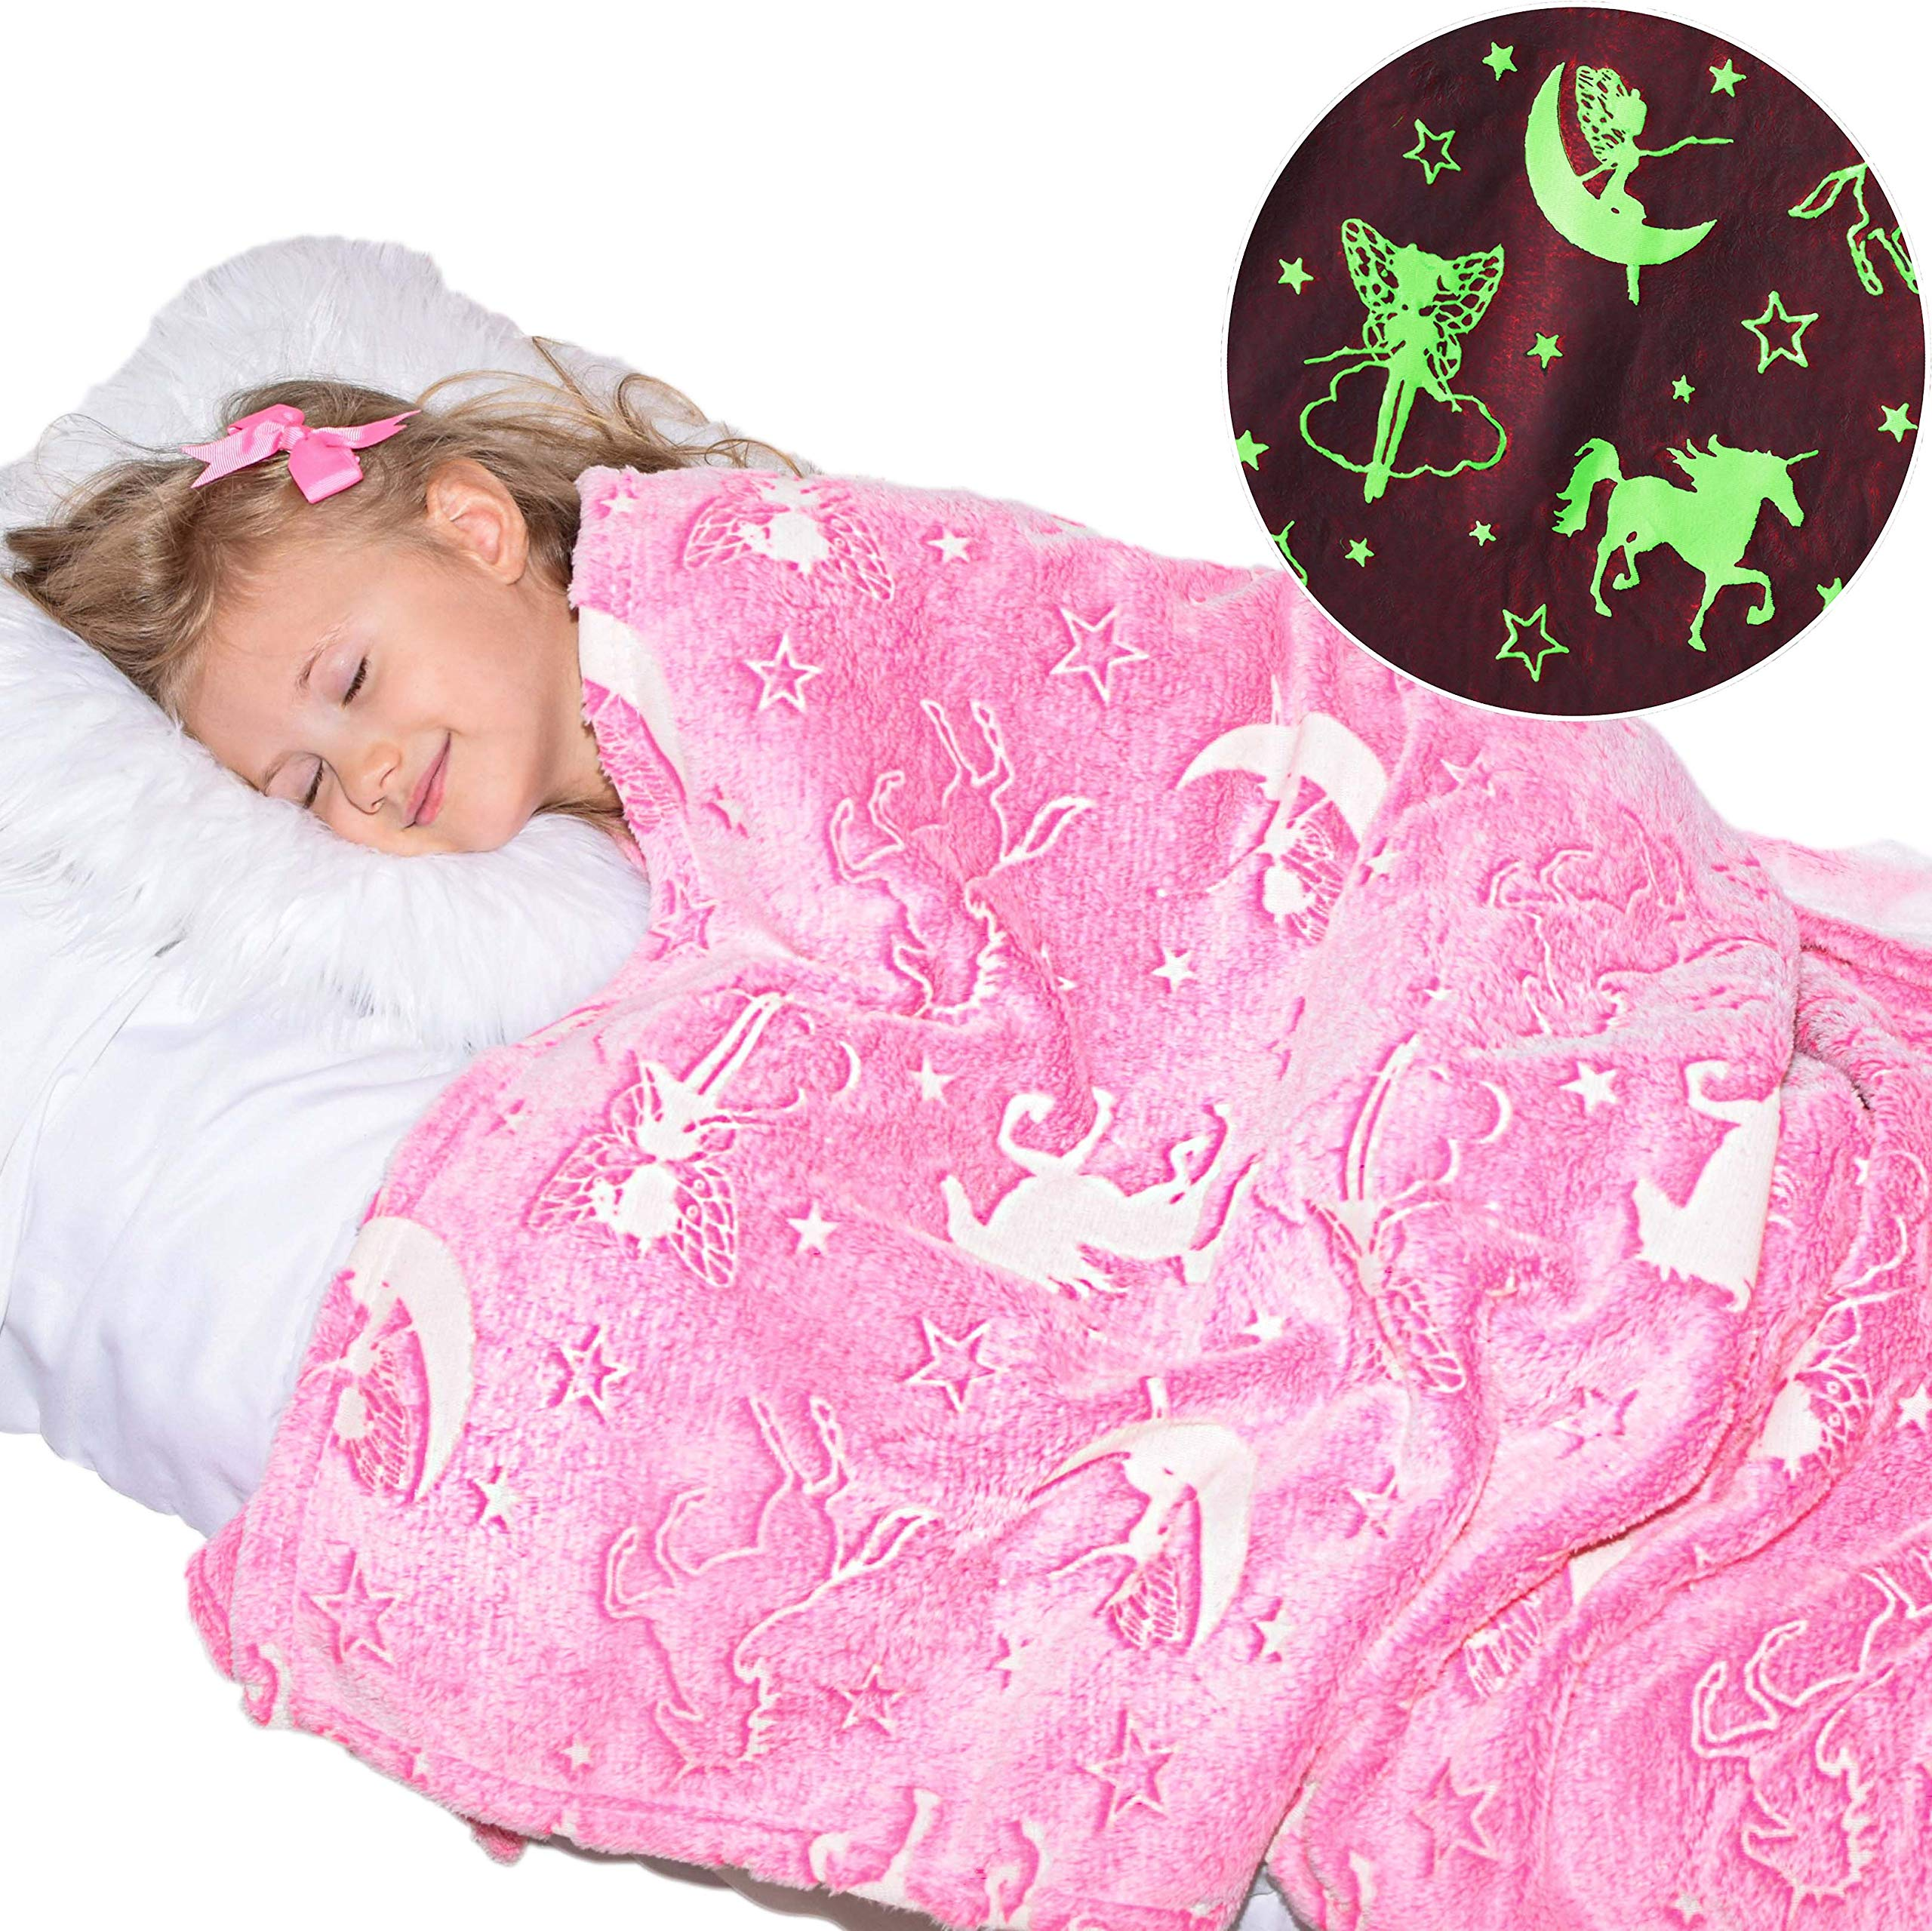 Unicorn Blanket Glow in the Dark Luminous Fairy Blanket for Kids - Soft Plush Pink Fantasy Star Blanket Throw - Large 60in x 50in Glowing Magical Blankets Gift for Girls (Pink Unicorn and Fairy) by DreamsBe